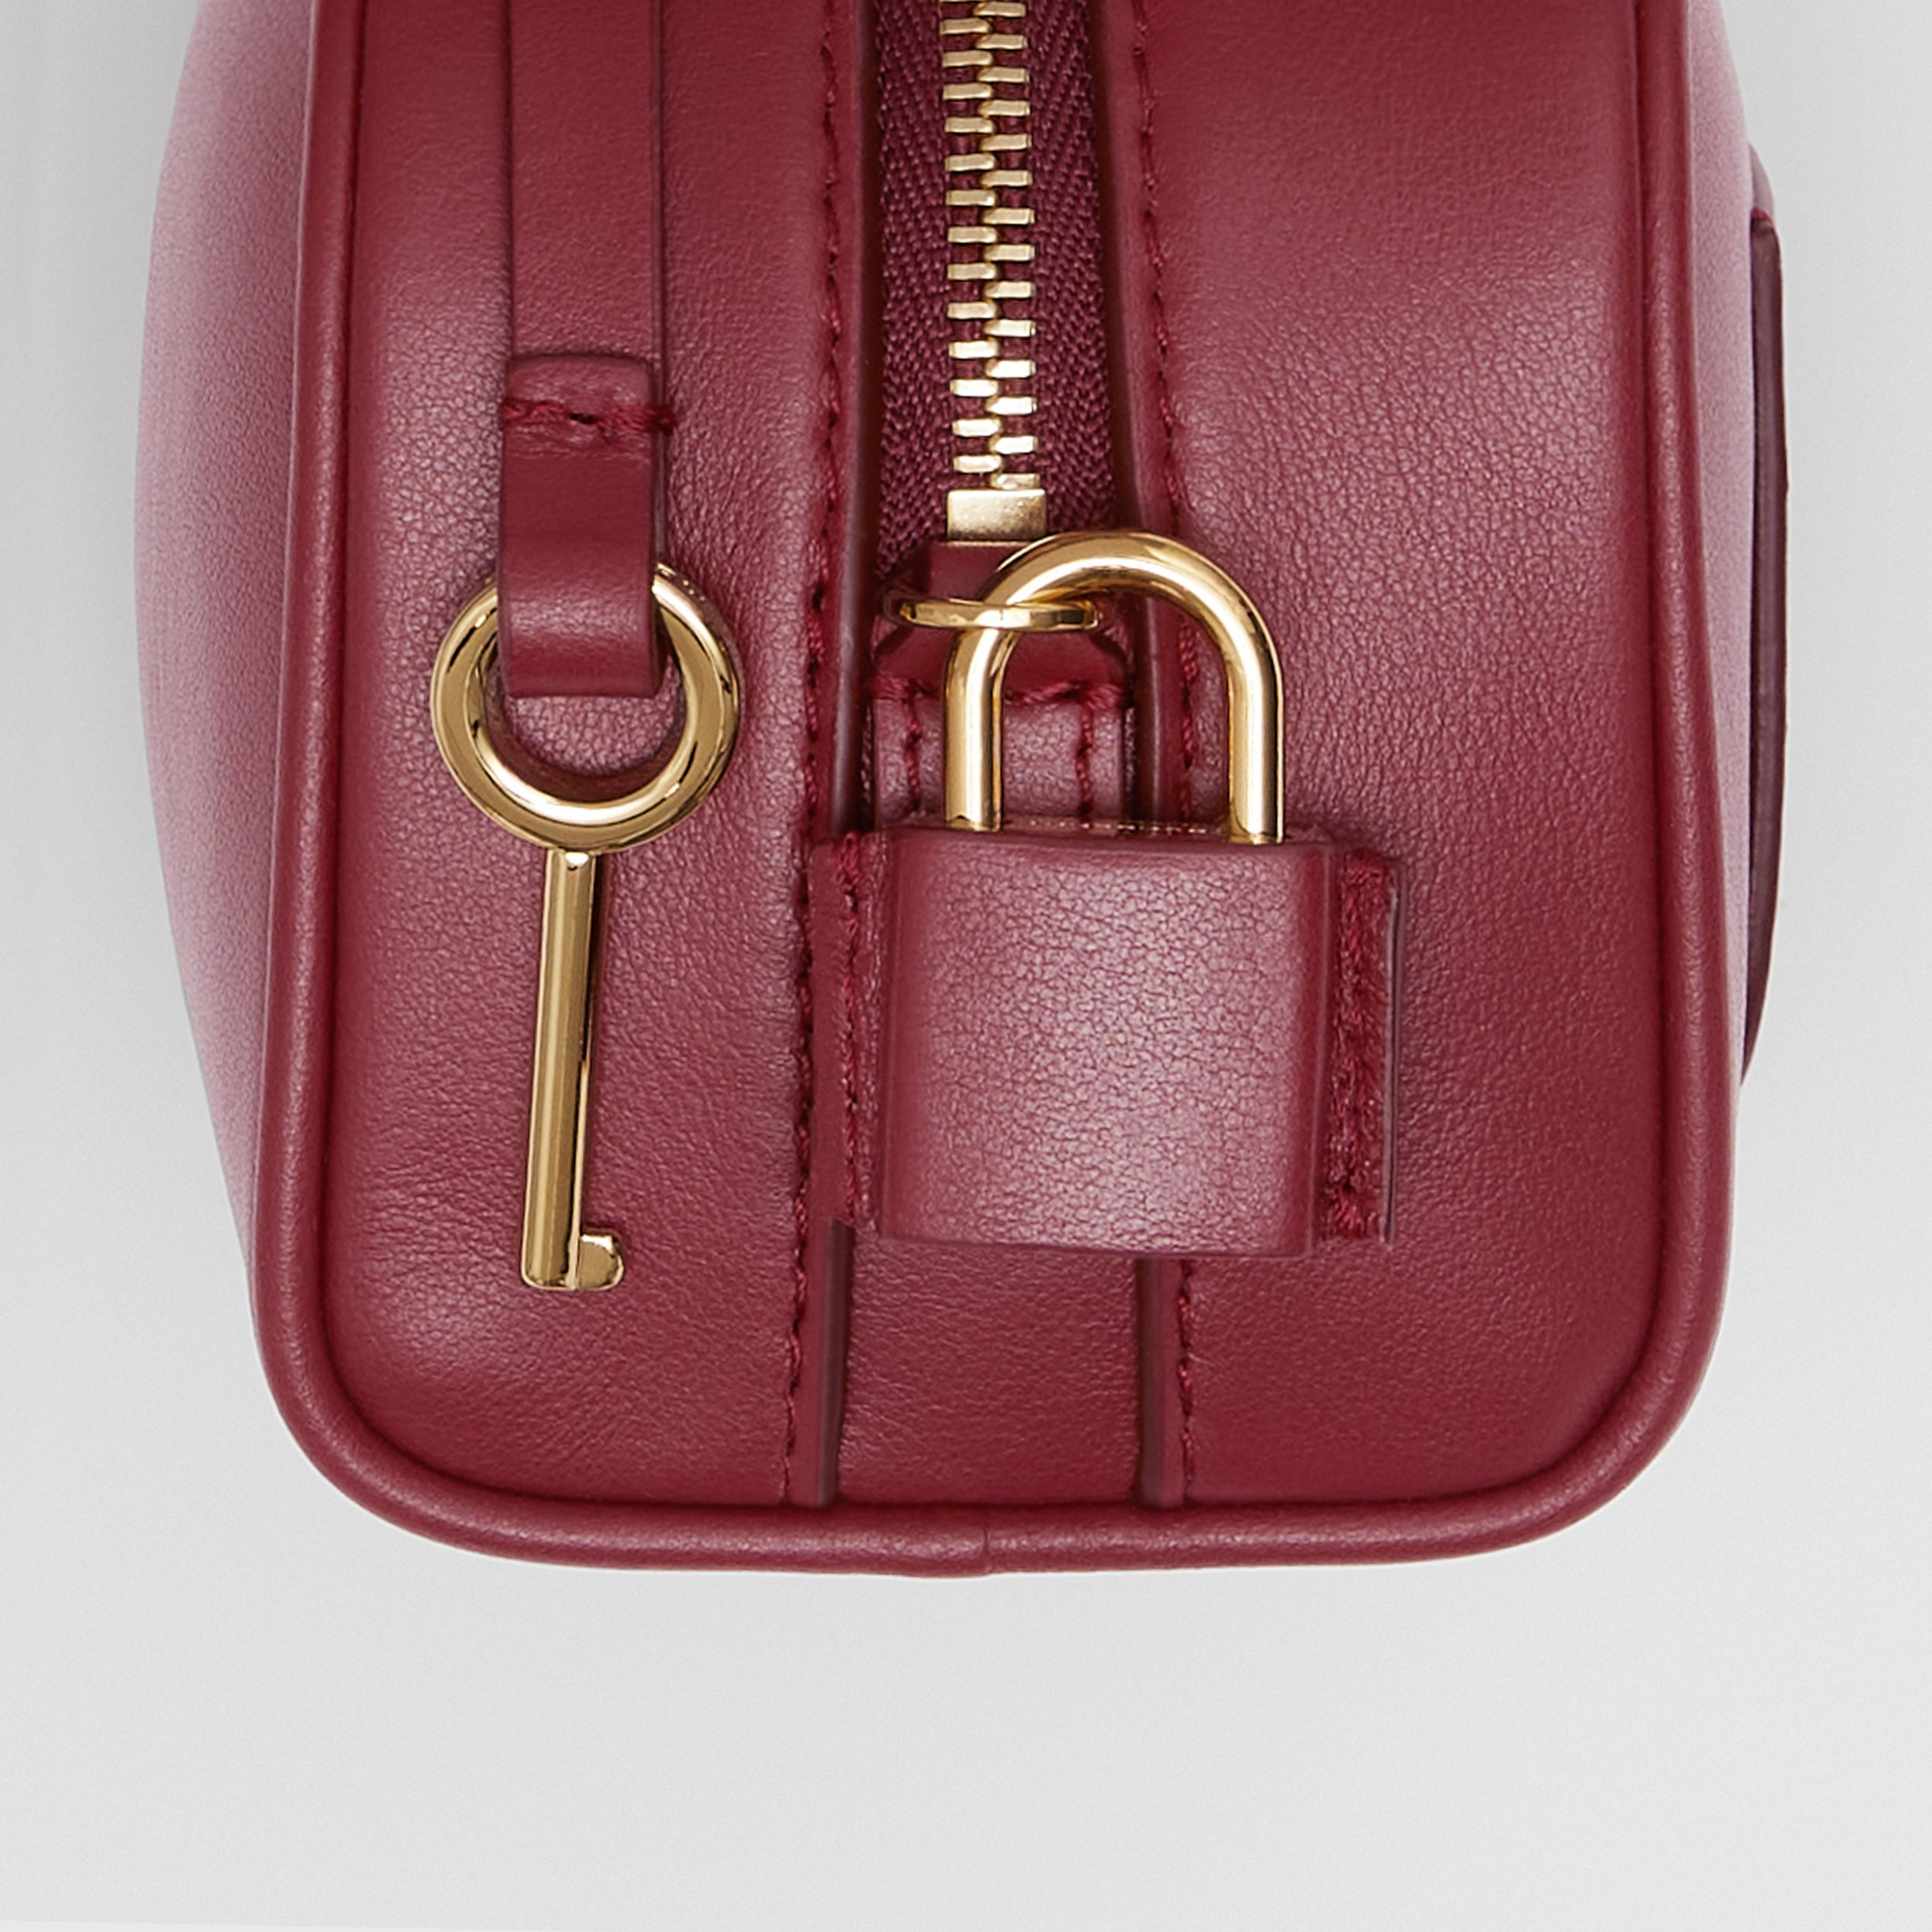 Micro Leather Cube Bag in Dark Crimson | Burberry - 2